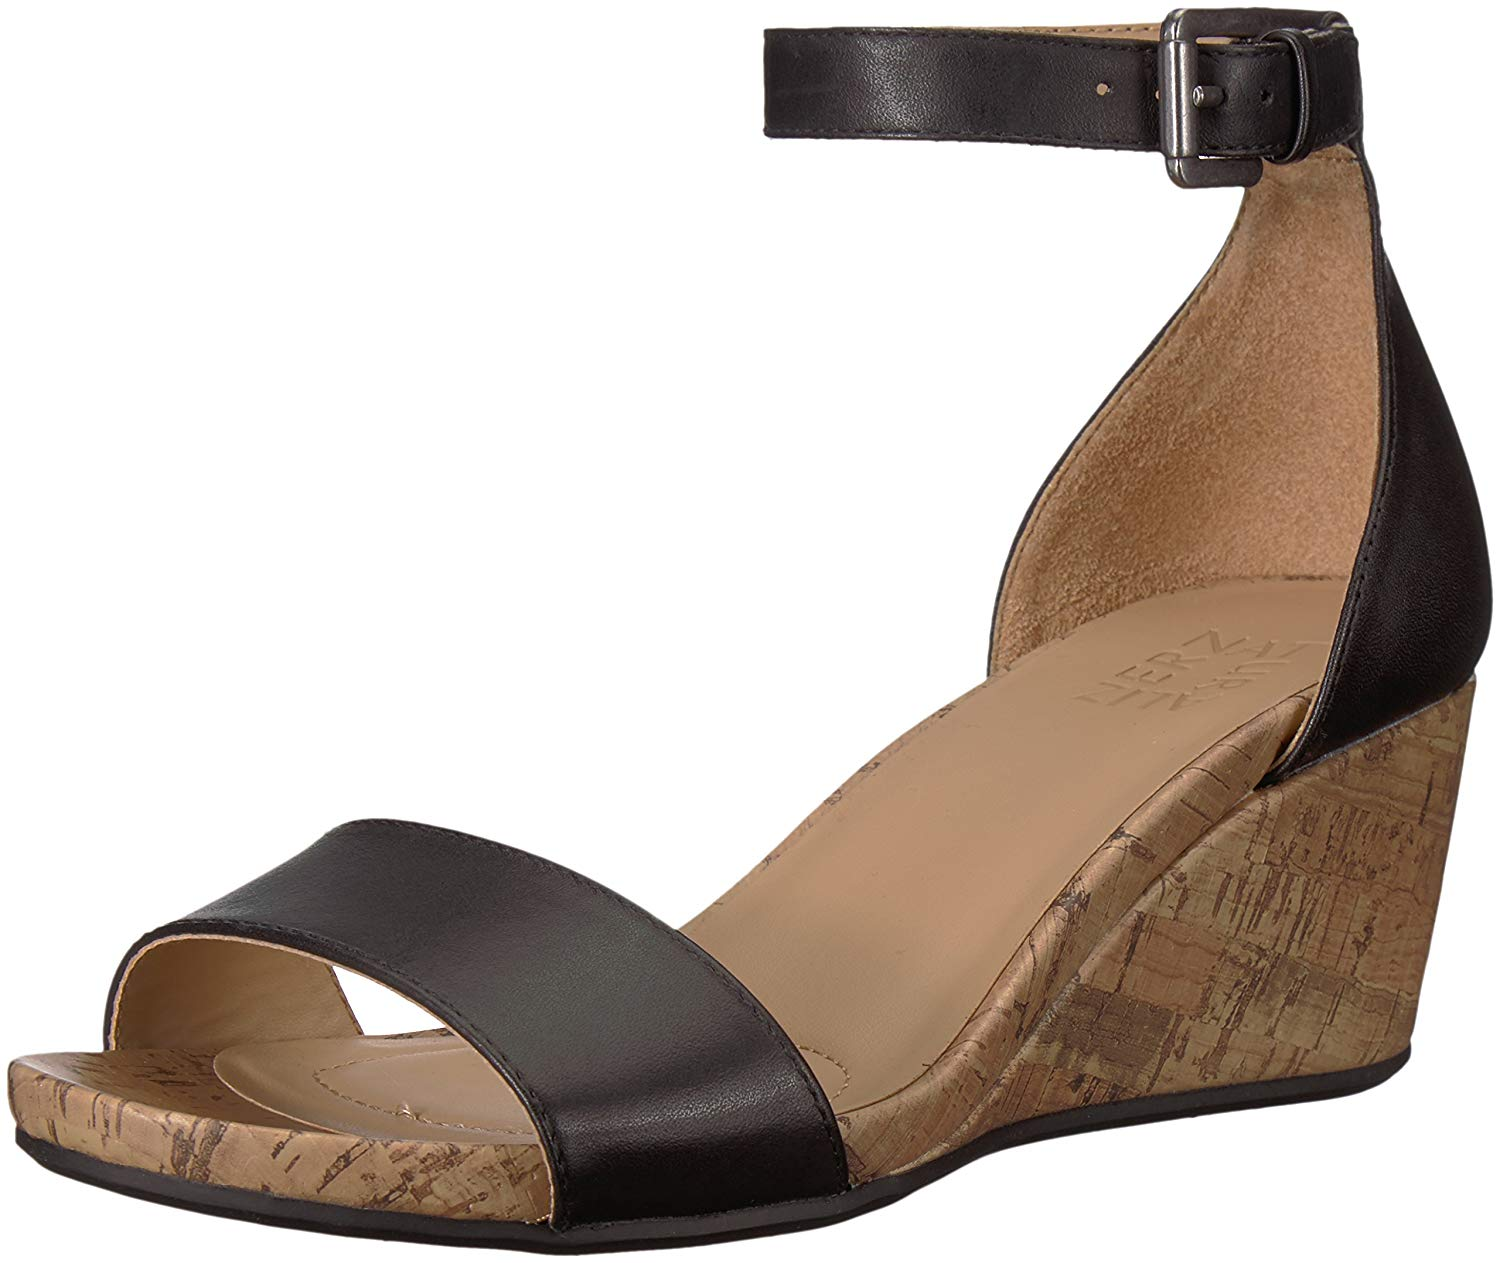 ddb95c92e01b Get Quotations · Naturalizer Women s Cami Wedge Sandal